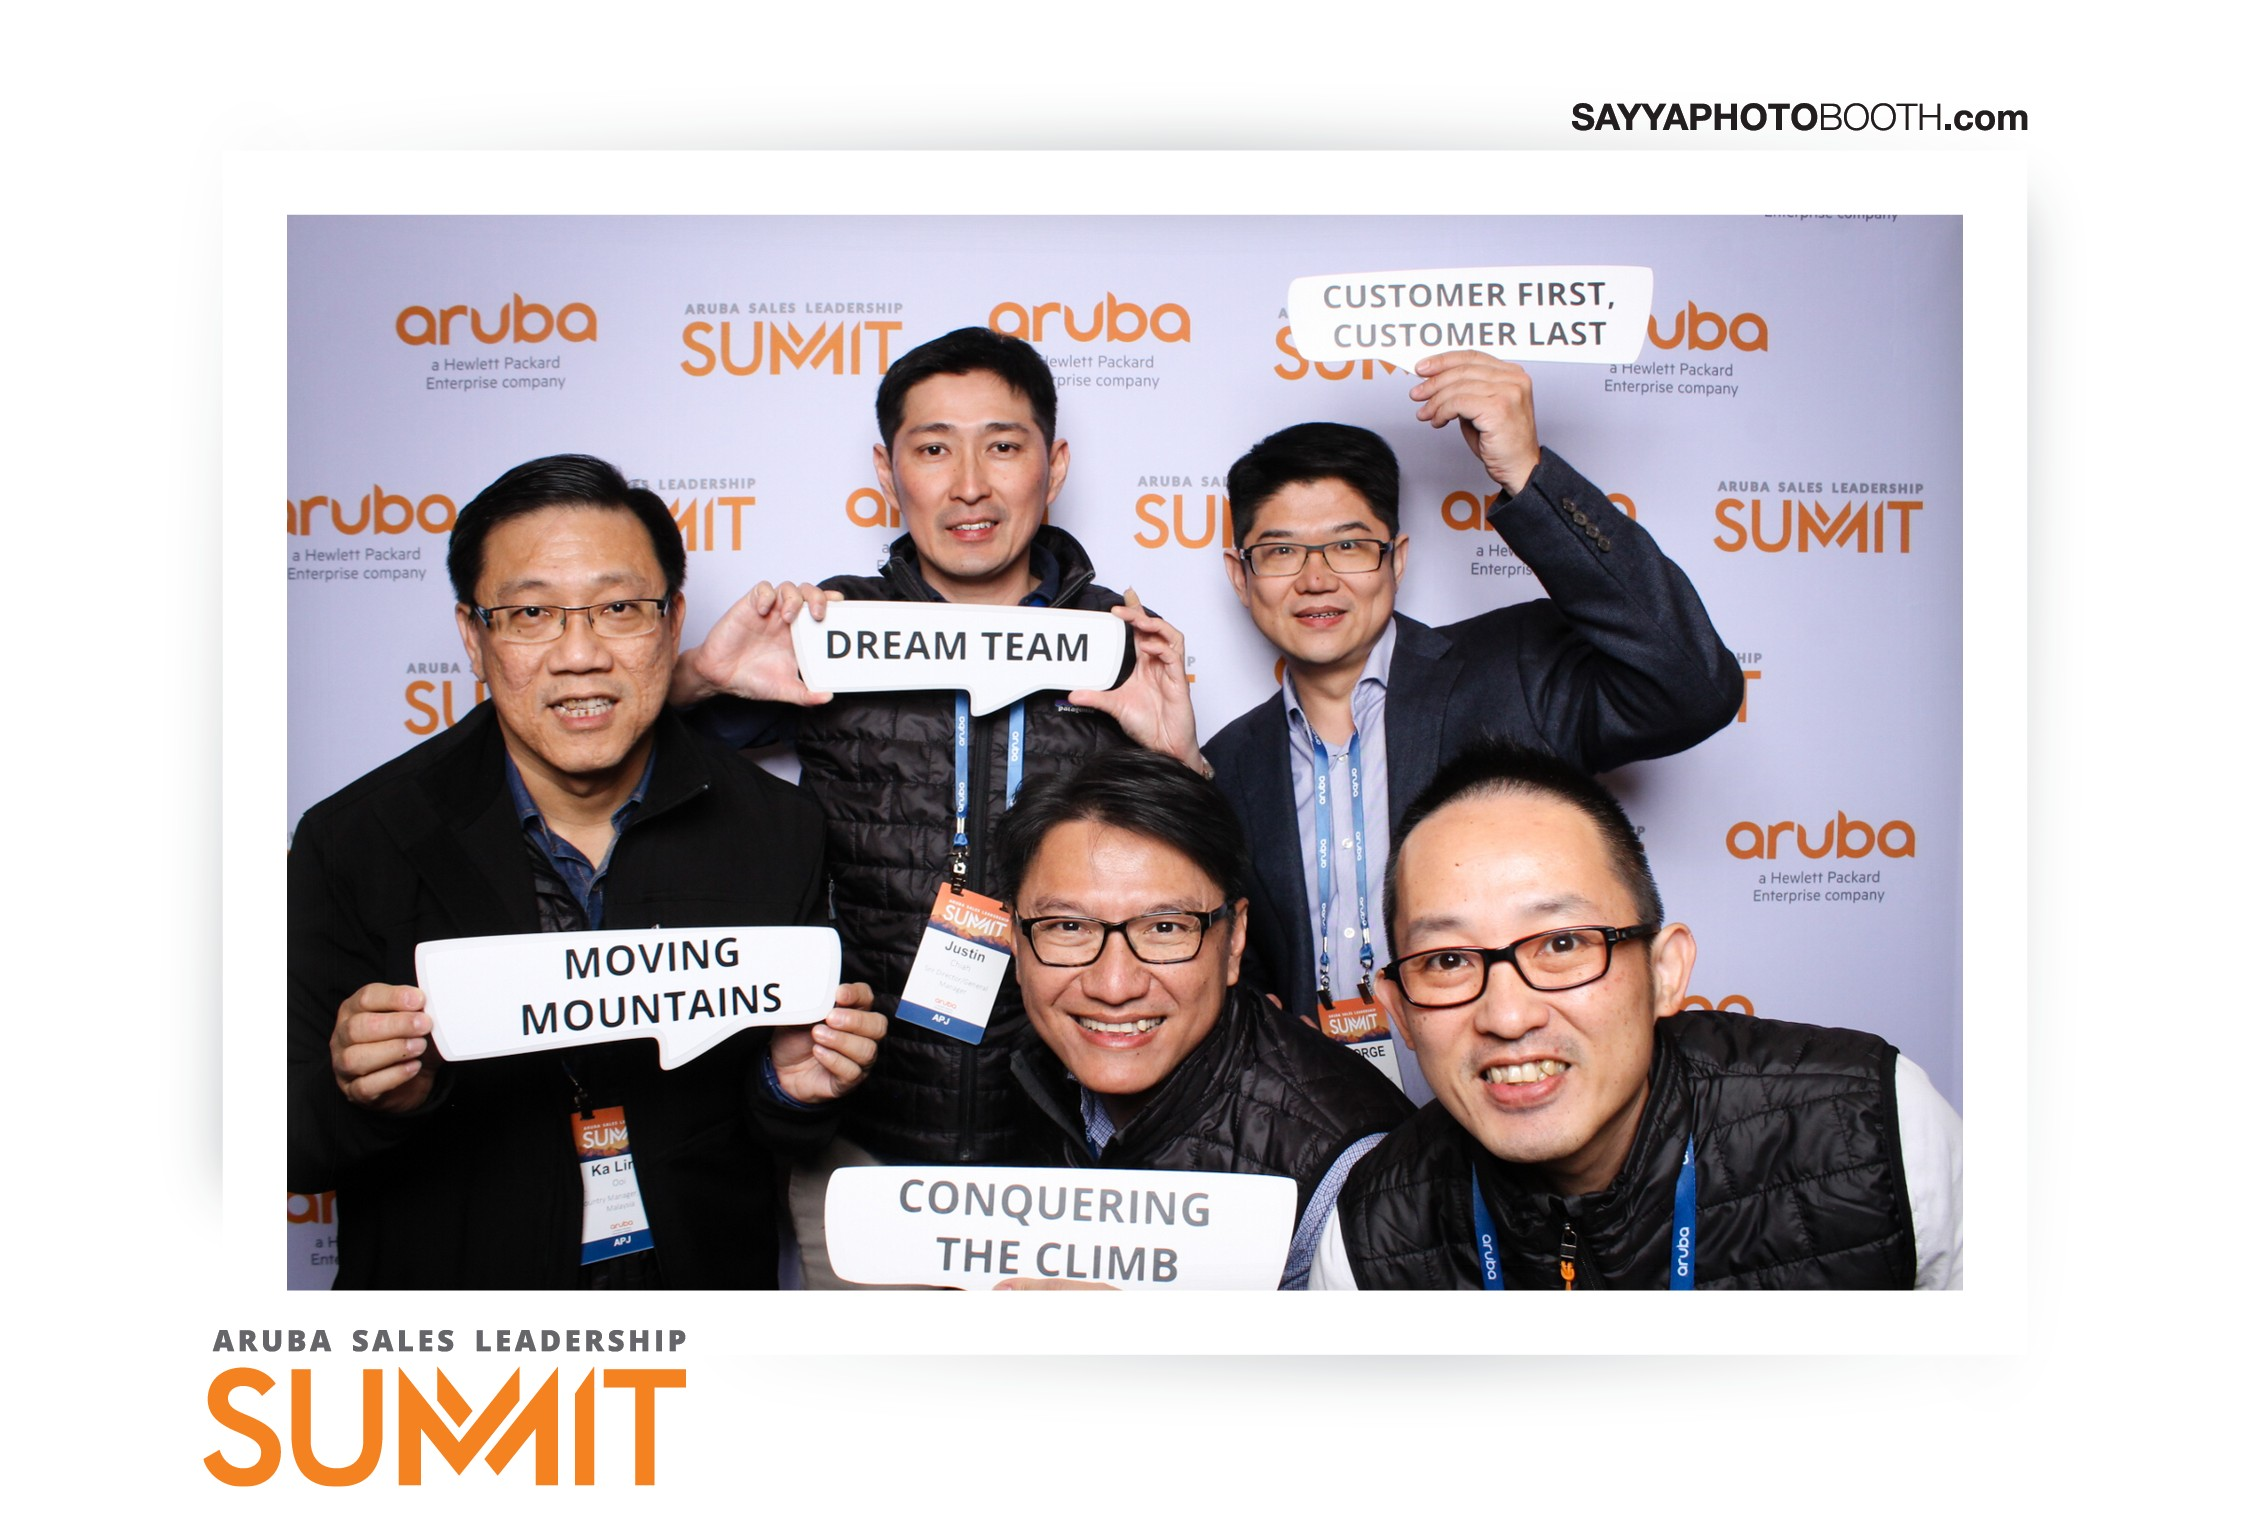 Aruba Networks Sales Leadership